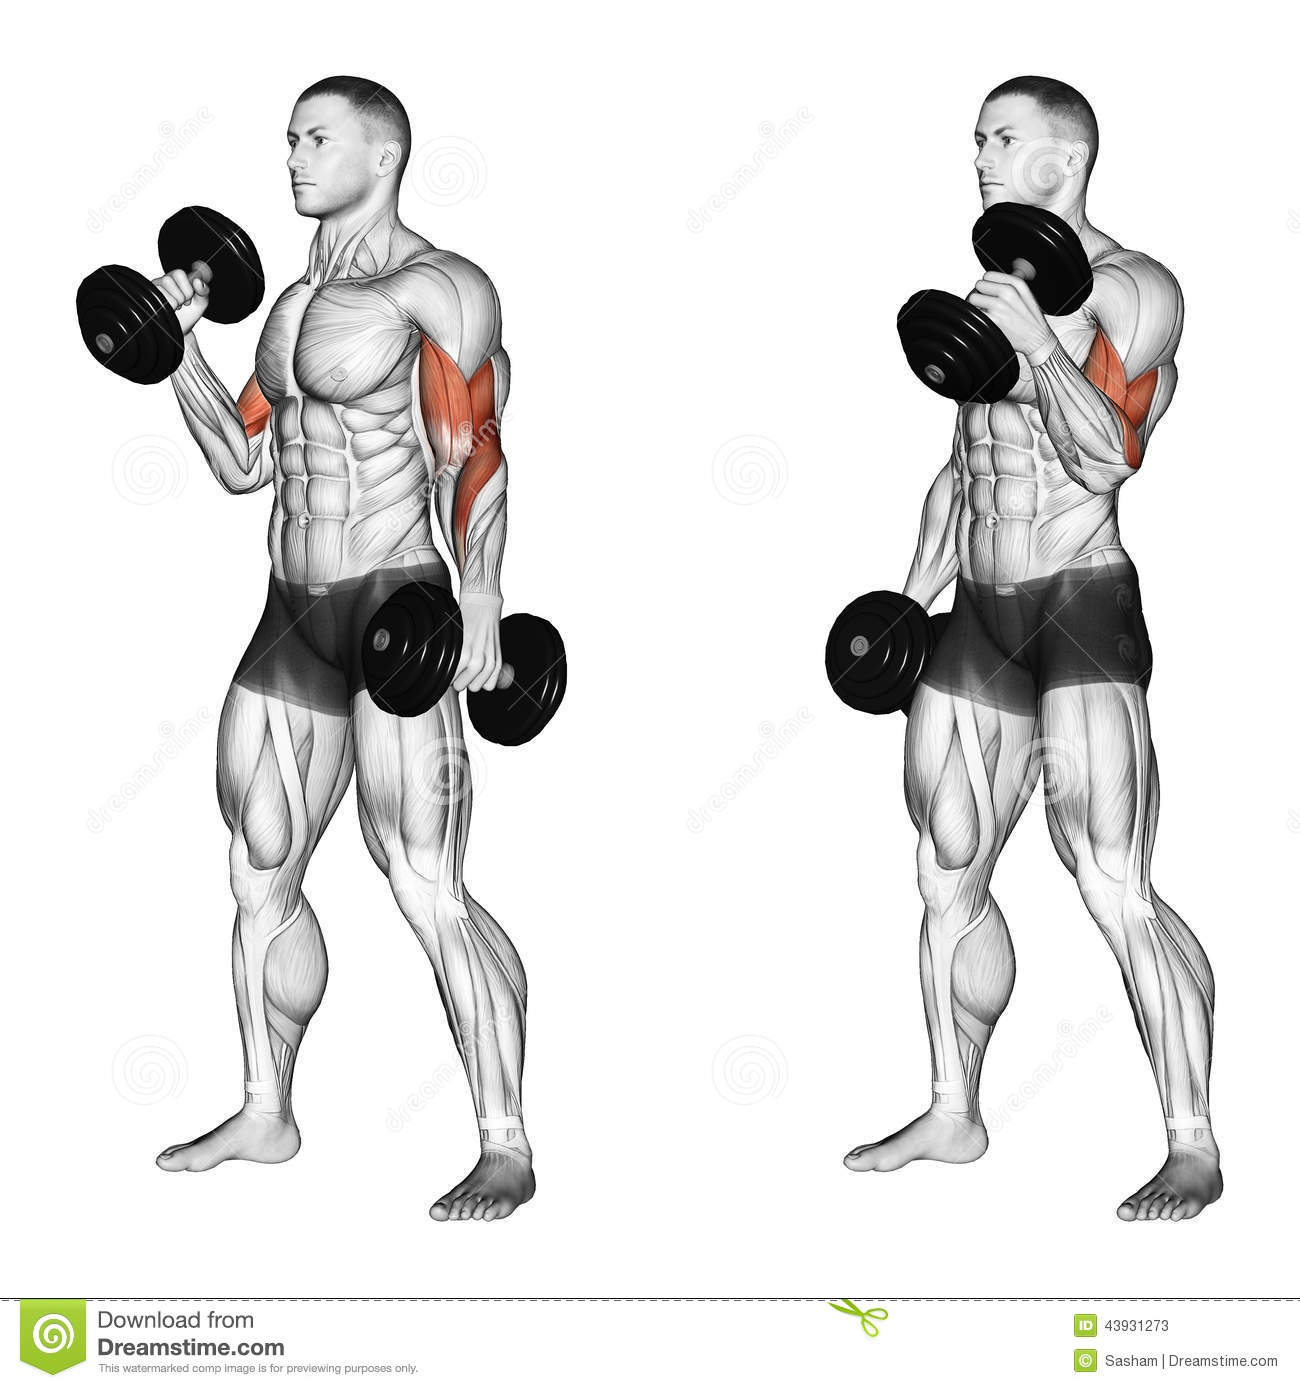 how to get bigger biceps at home without dumbbells